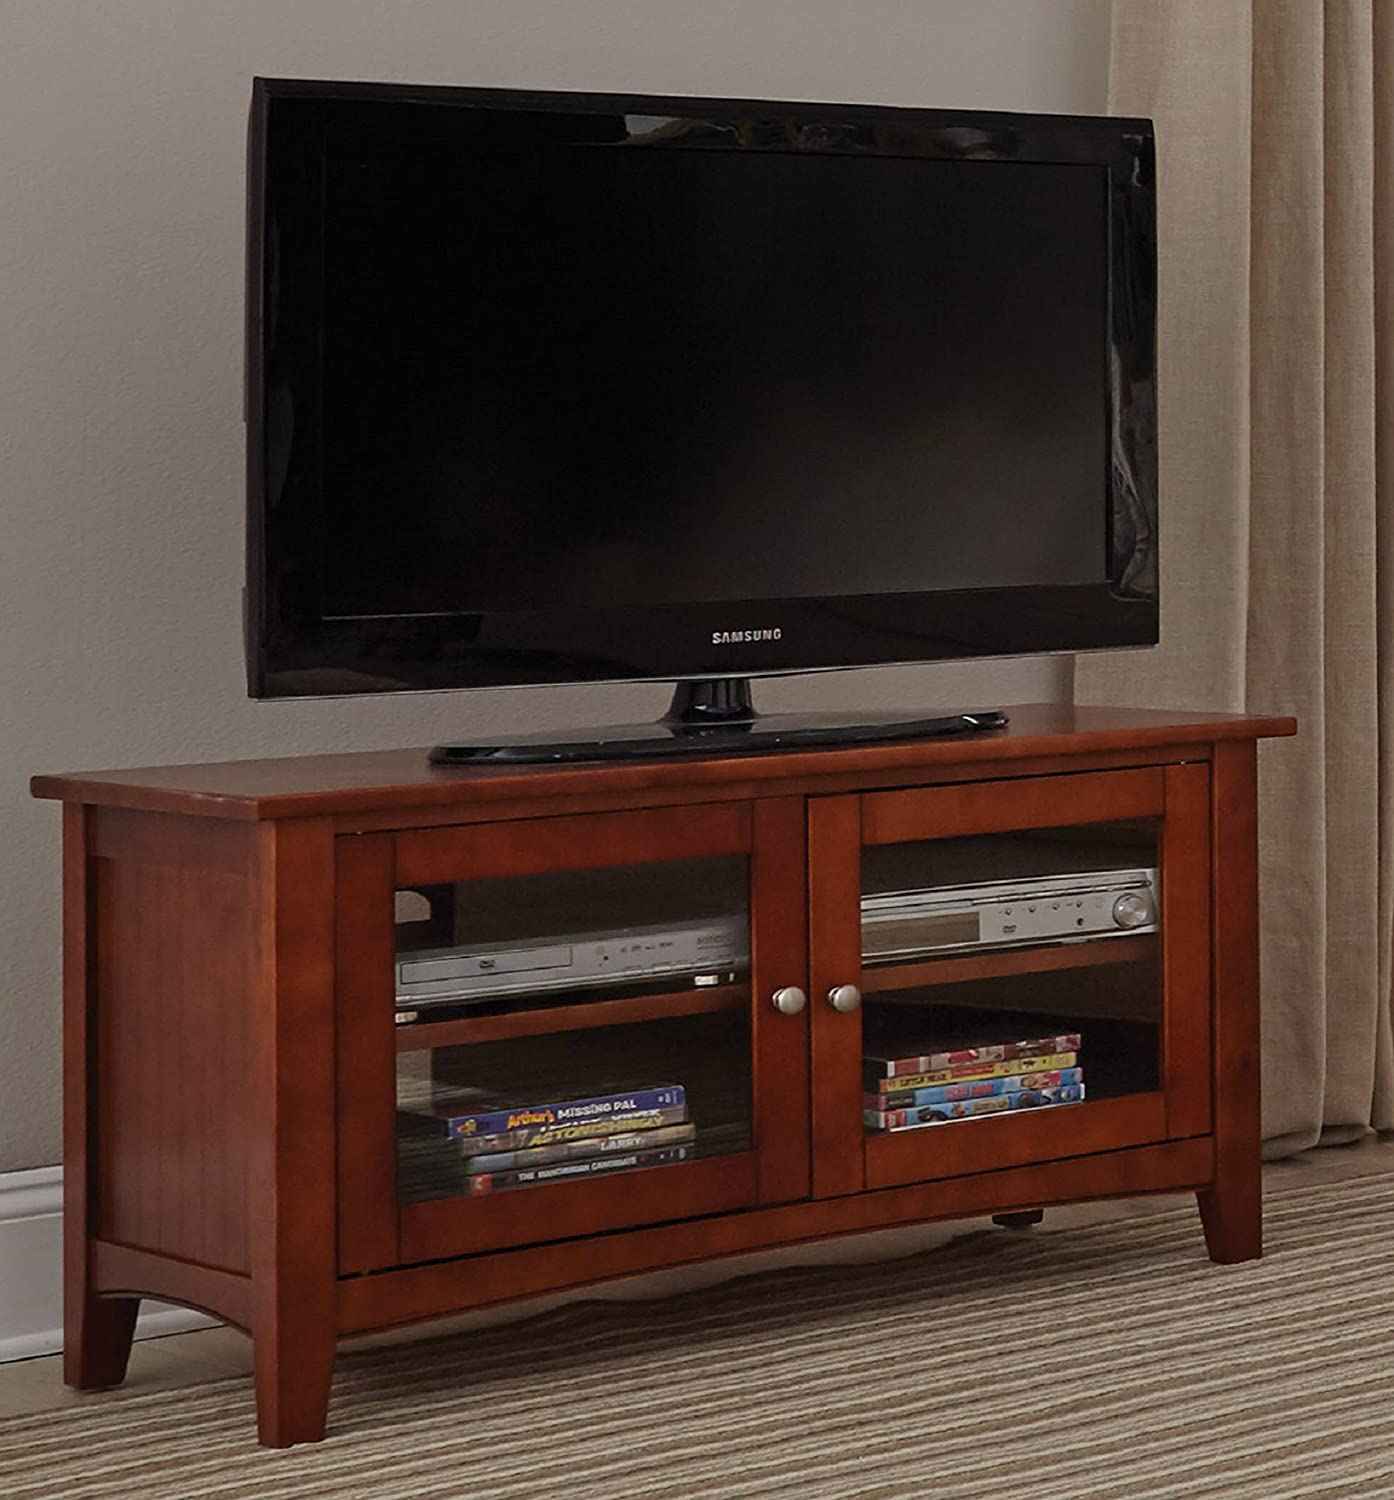 Alaterre Shaker Cottage TV Stand, 36-Inch, Cherry